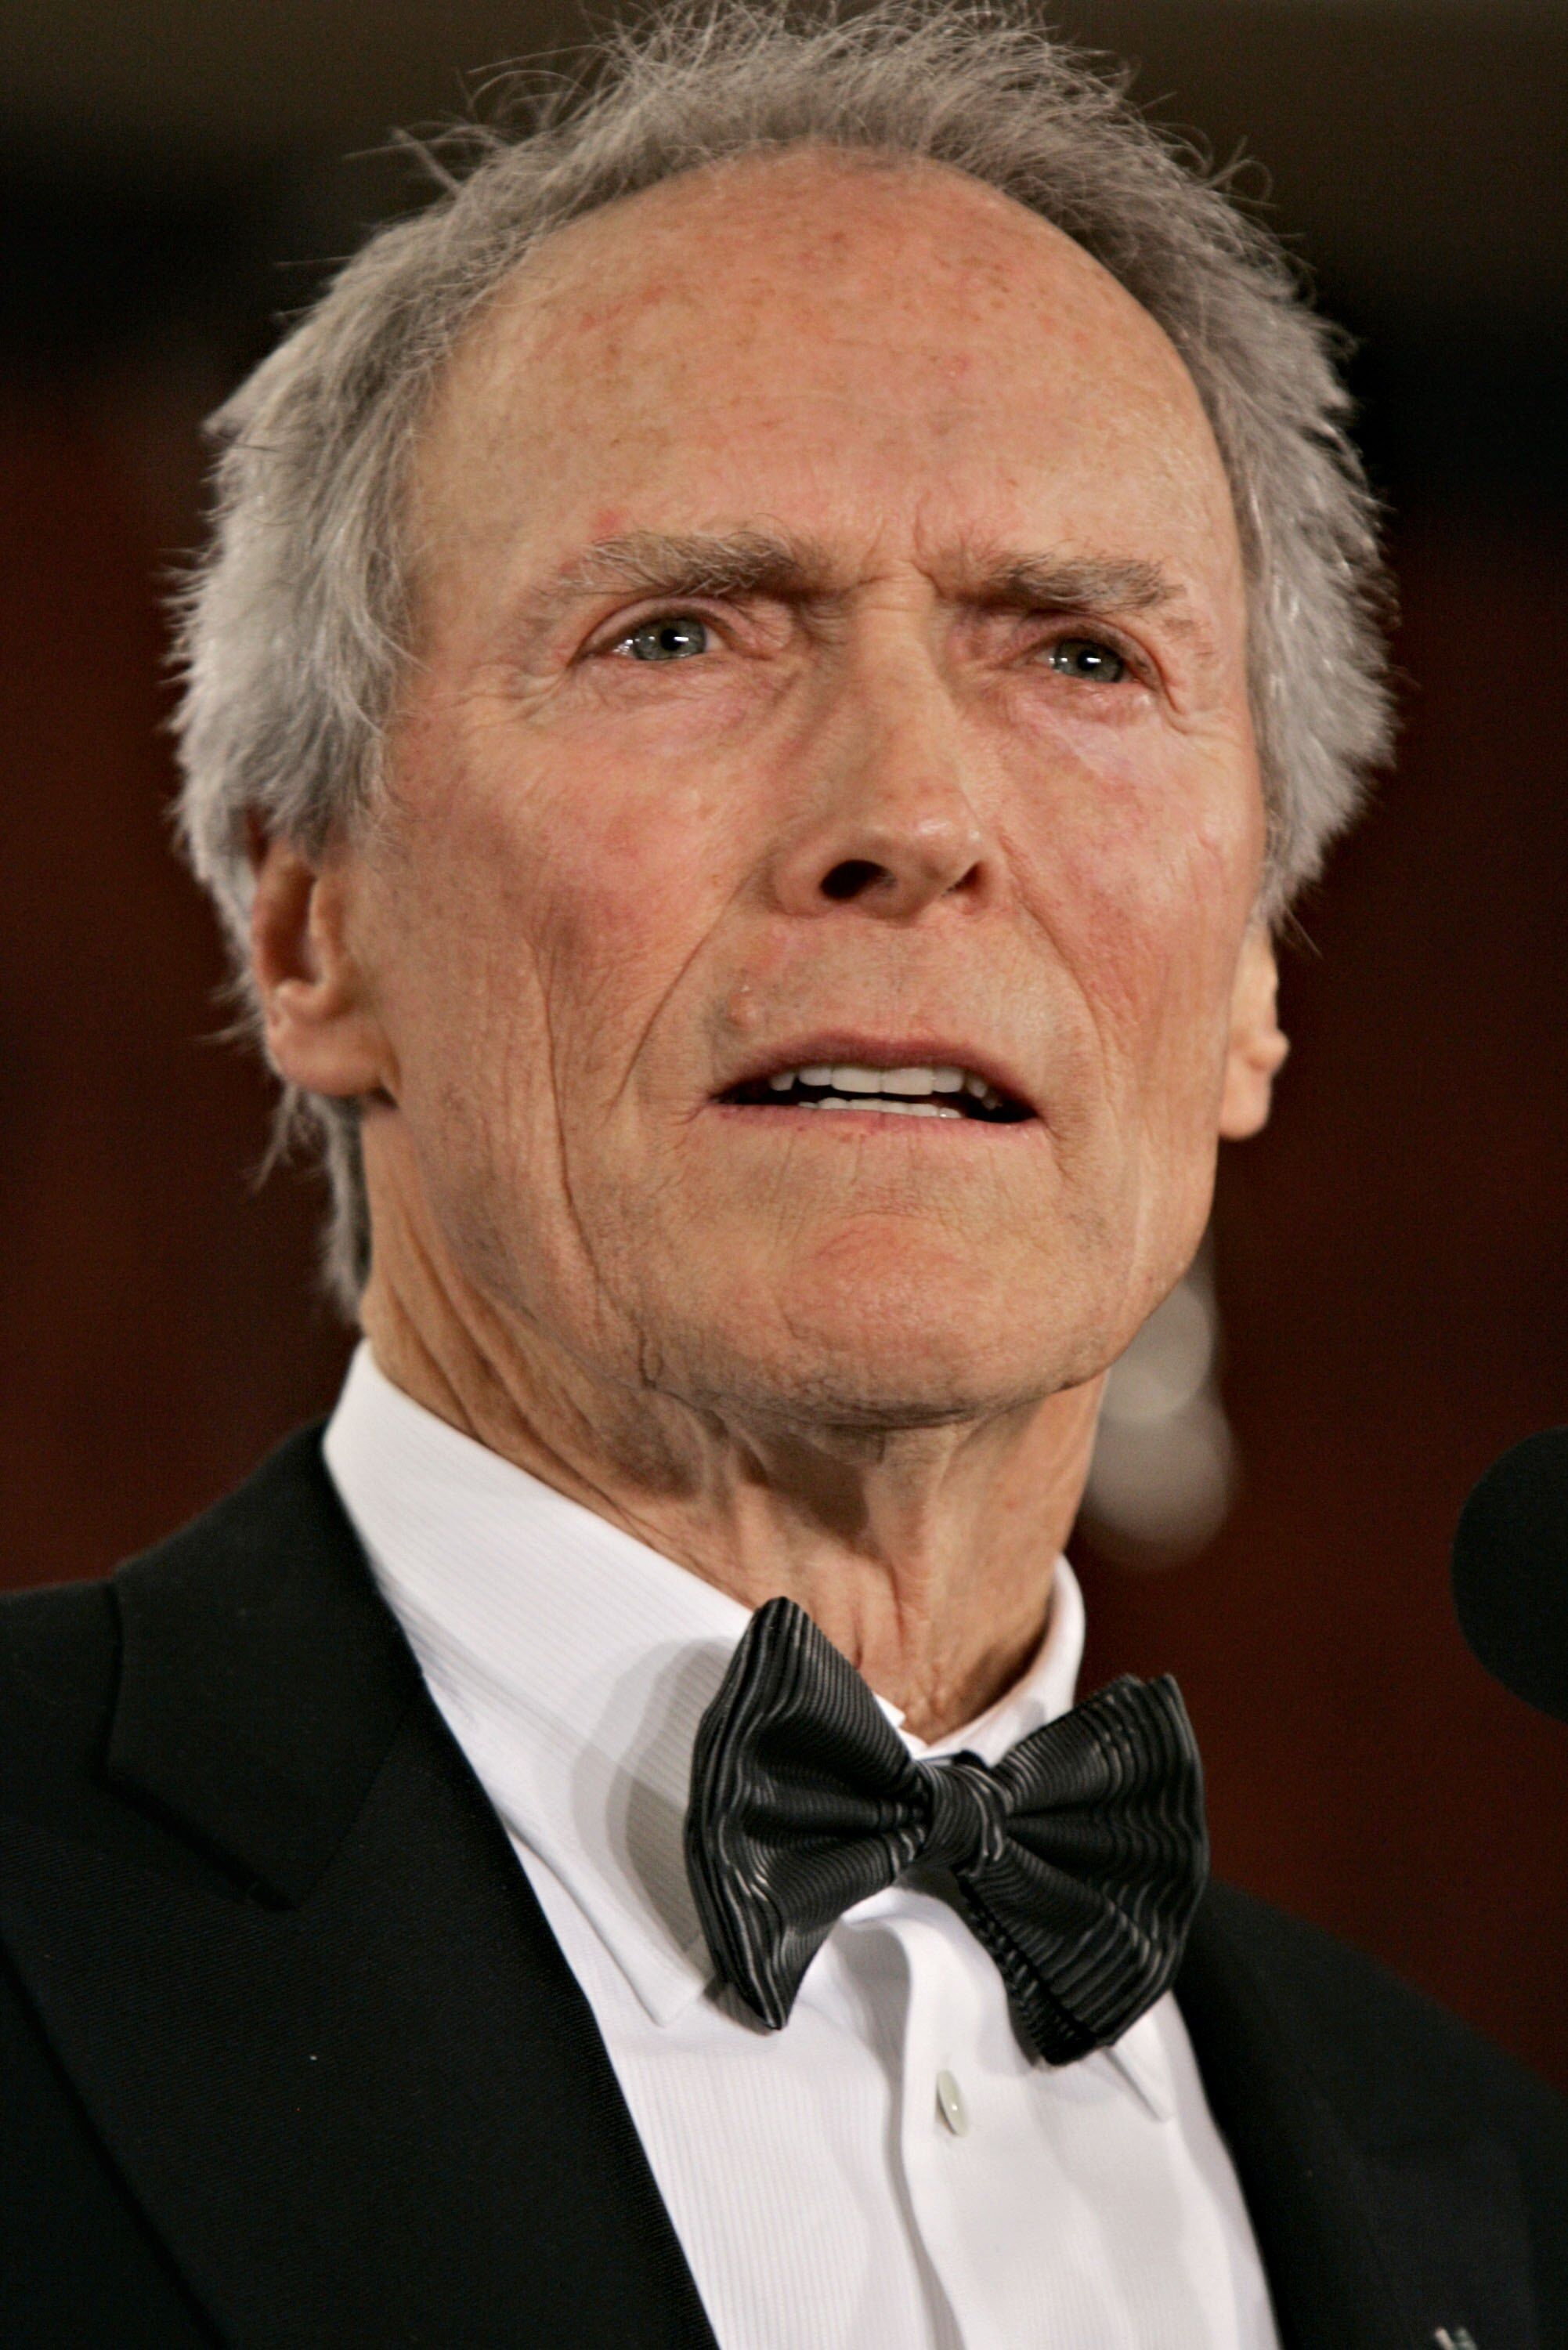 Clint Eastwood speaks after accepting his Lifetime Achievement Award in the press room during the 58th Annual Directors Guild Of America Awards held at Hyatt Regency Century Plaza on January 28, 2006 in Los Angeles, California. | Source: Getty Images